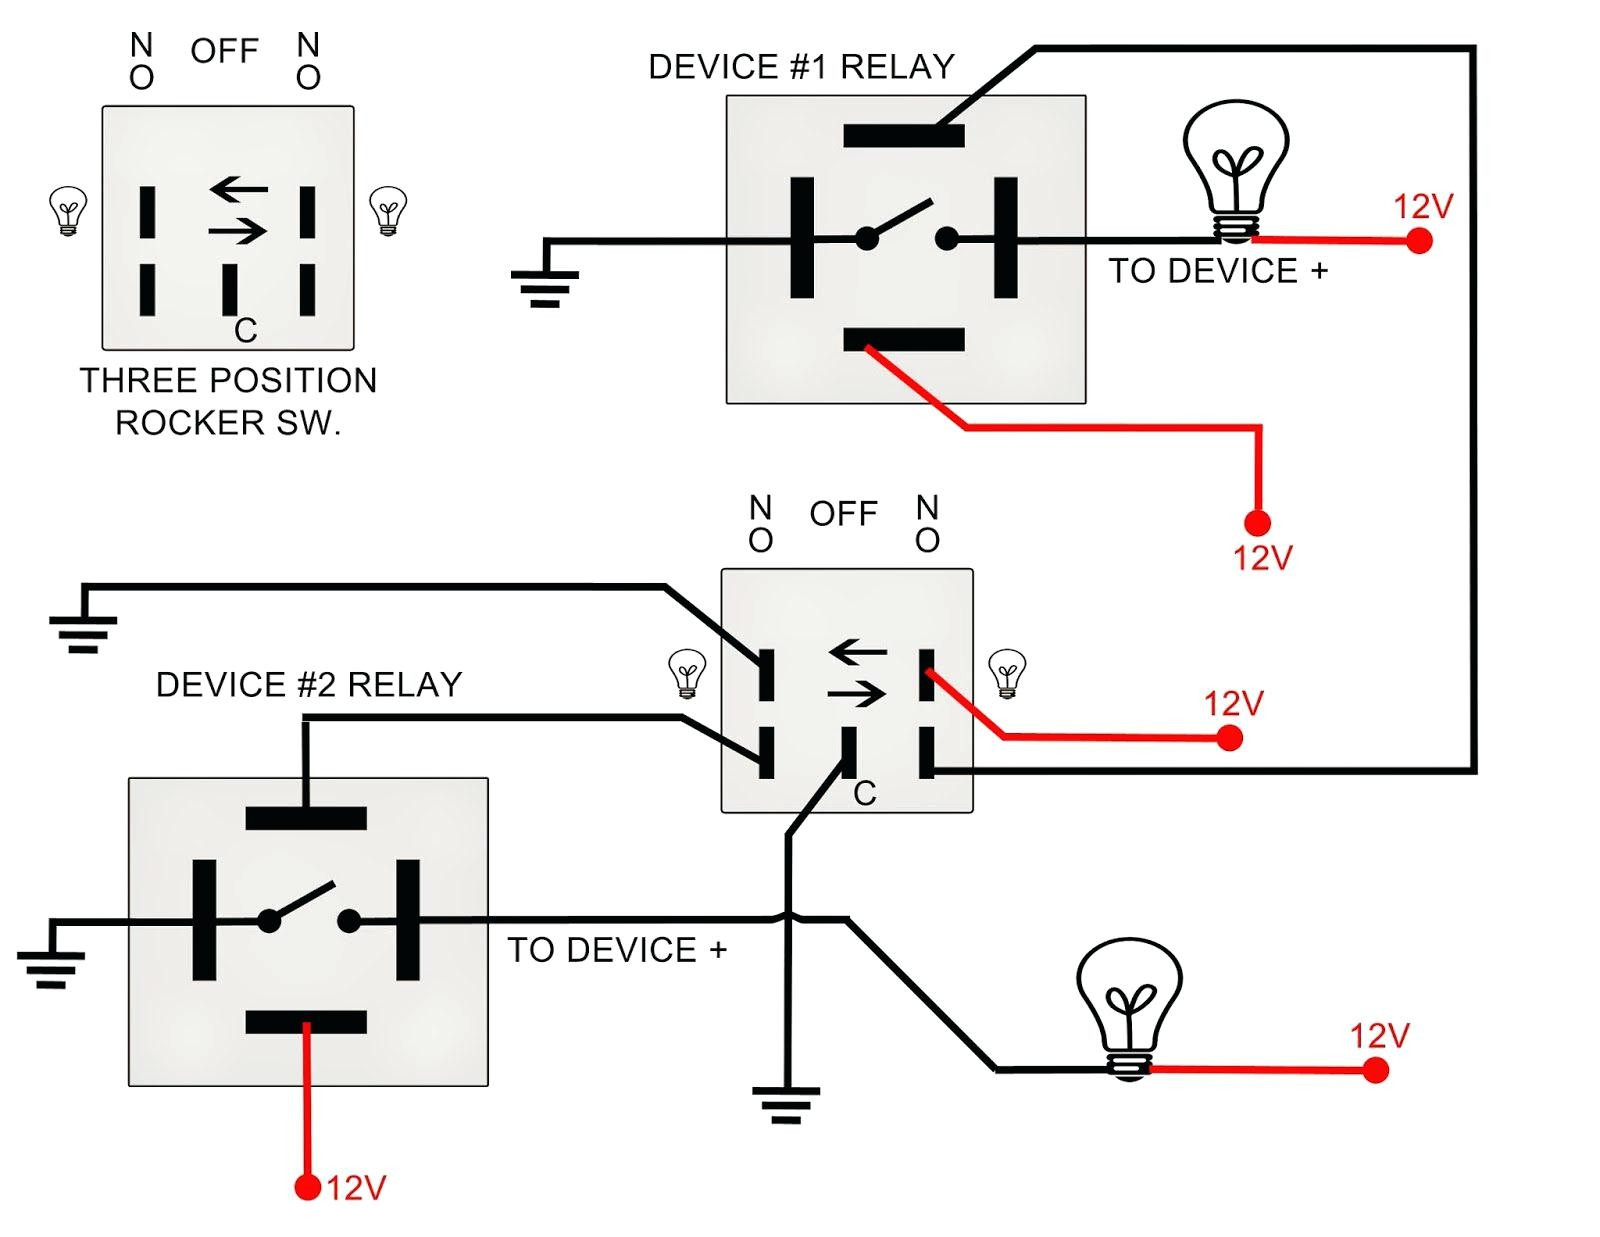 switch diagram wiring relay 240v schematic toggle rocker pole led diagrams downlights latching single wire light switches schematics rider knight